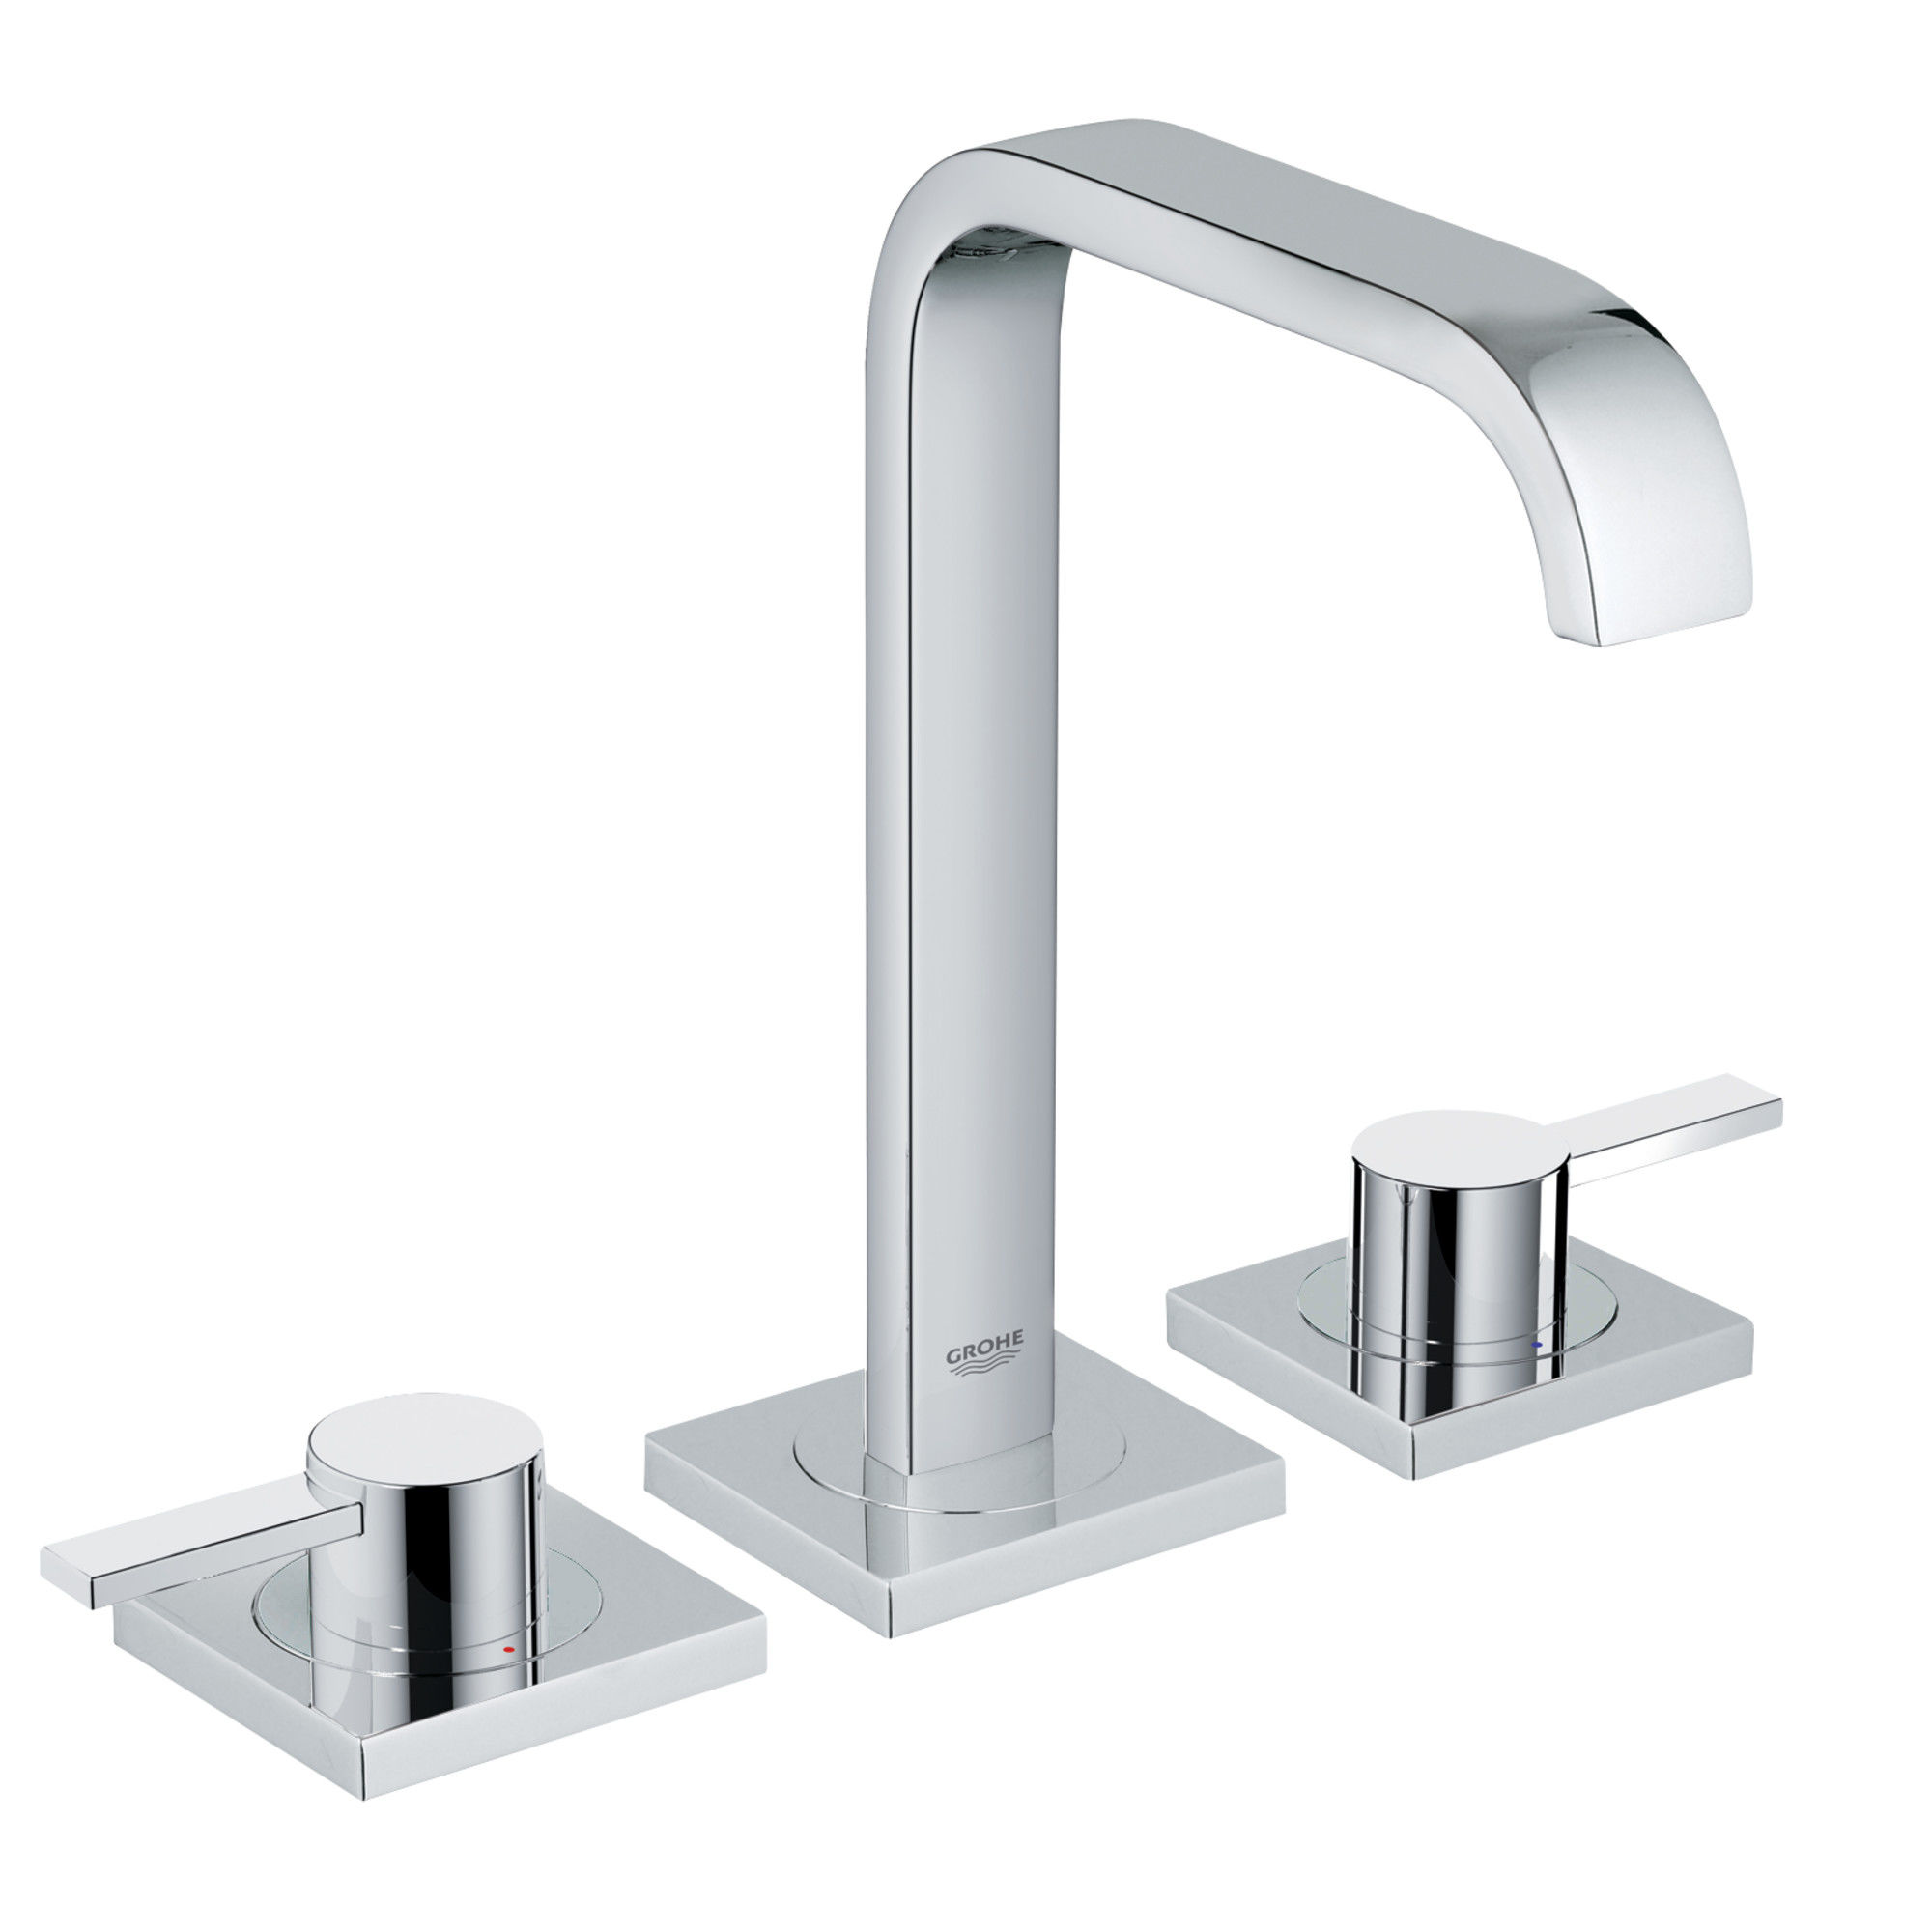 Ordinaire Grohe 2019100A Starlight Chrome Allure 1.2 GPM Widespread Bathroom Faucet  With SilkMove Technology   Free Metal Pop Up Drain Assembly With Purchase  ...